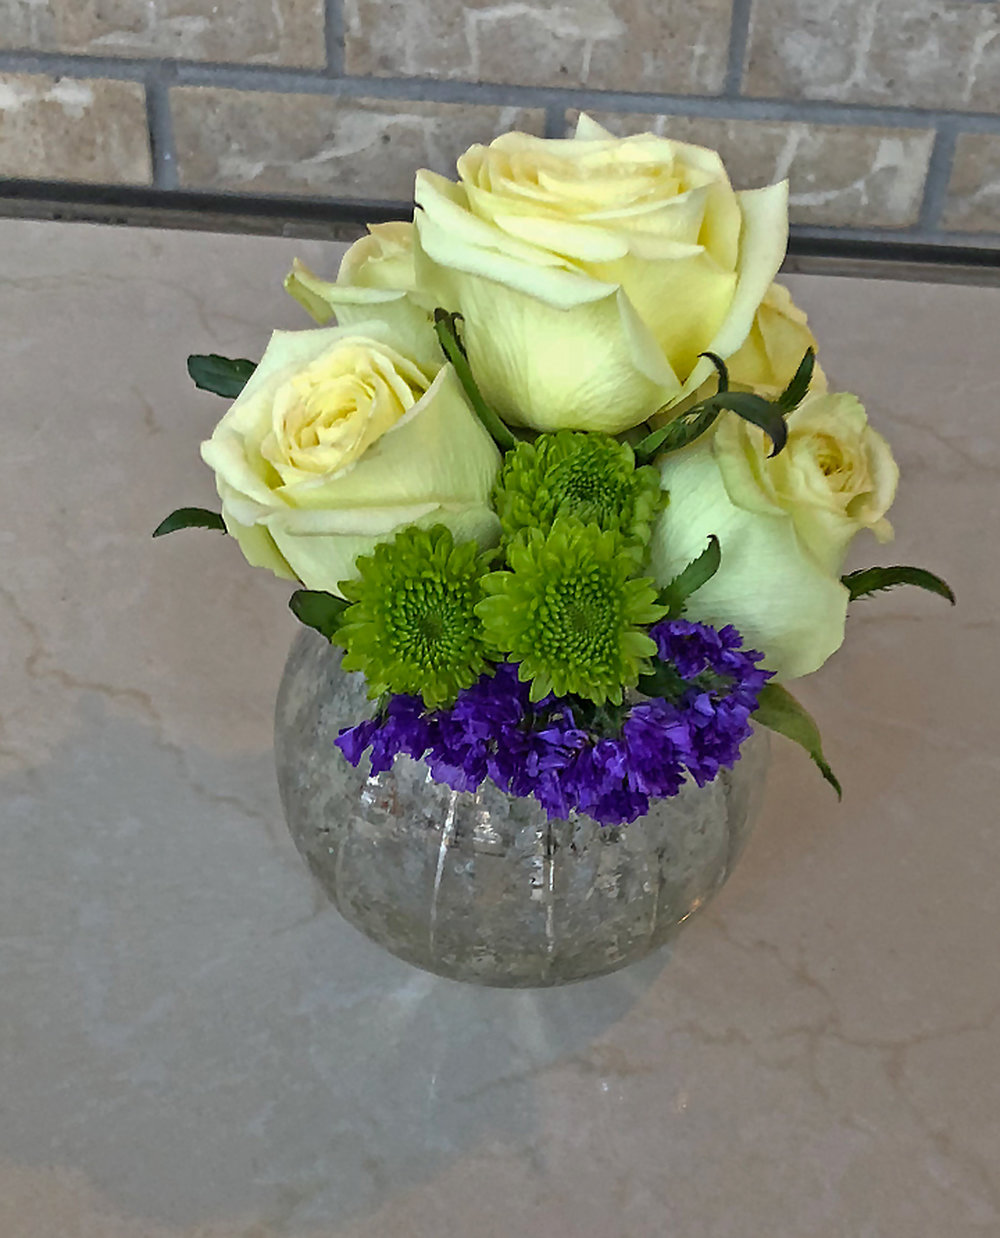 small centerpieces or accent pieces for tables - fresh flowers in antique bowl